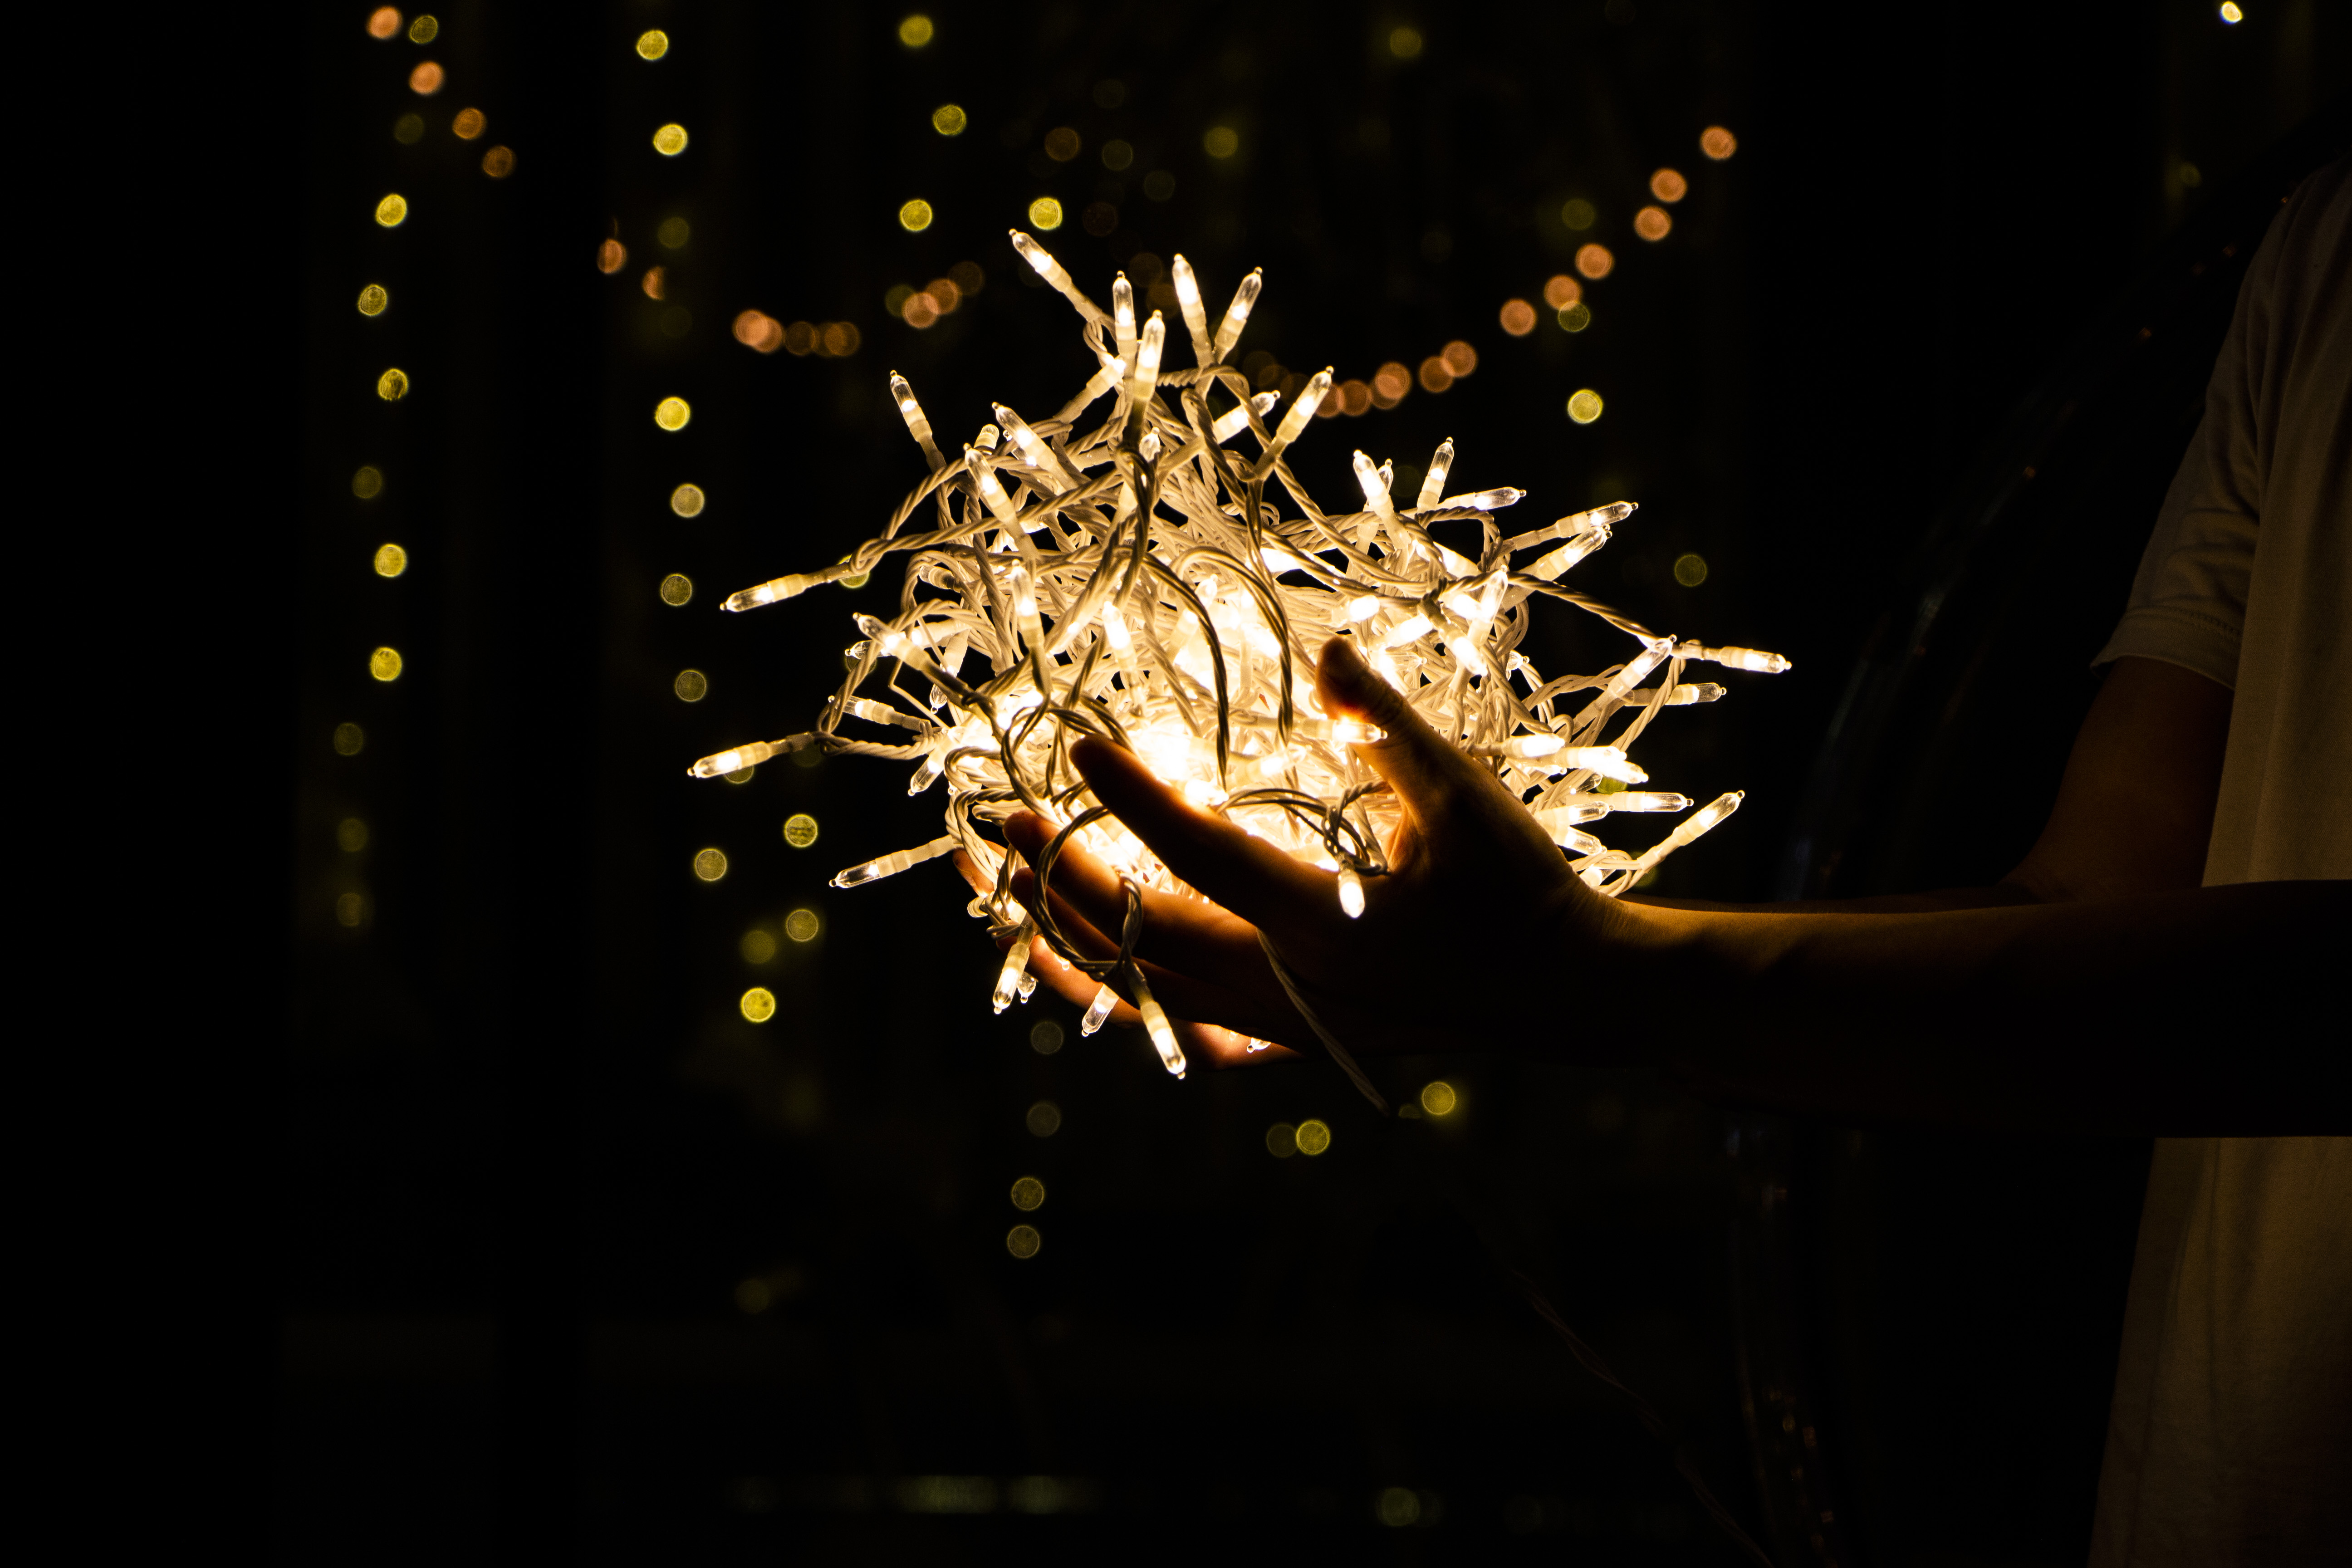 Decorative String Lights: Why are they so popular?